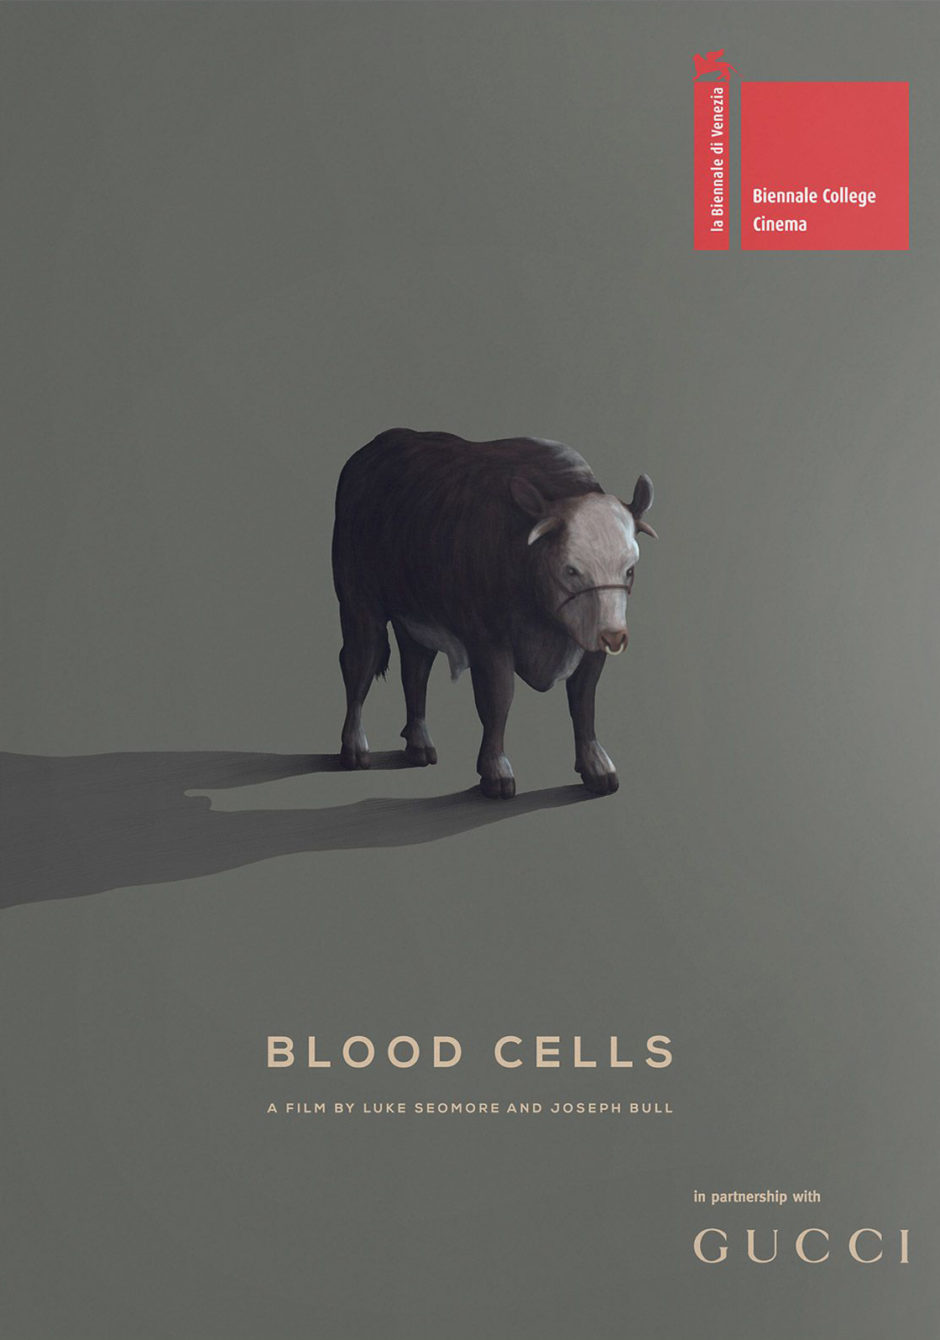 official-iconographic-poster_blood-cells